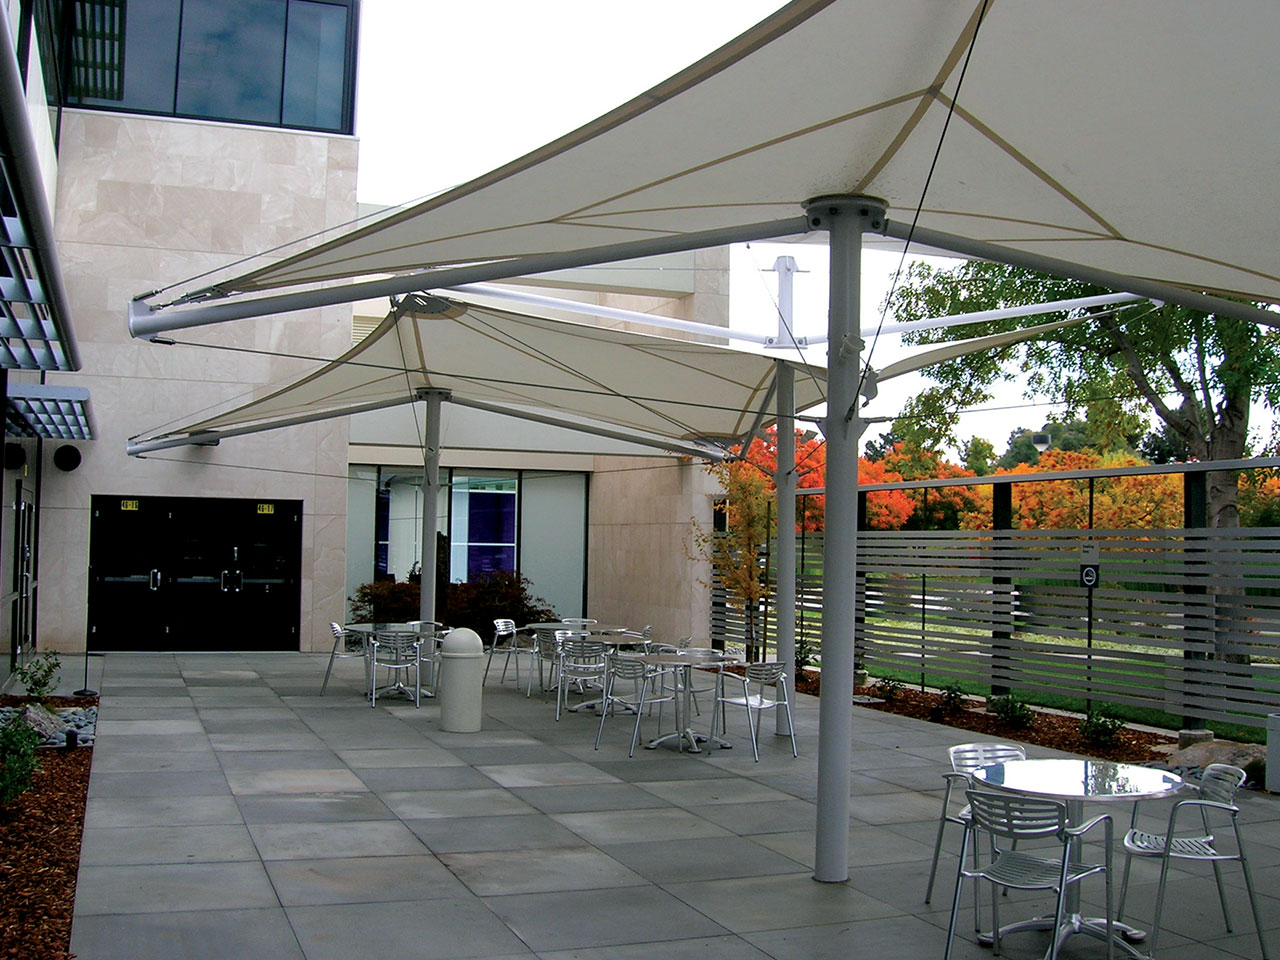 Corporate Patio Shade - Hewlett Packard